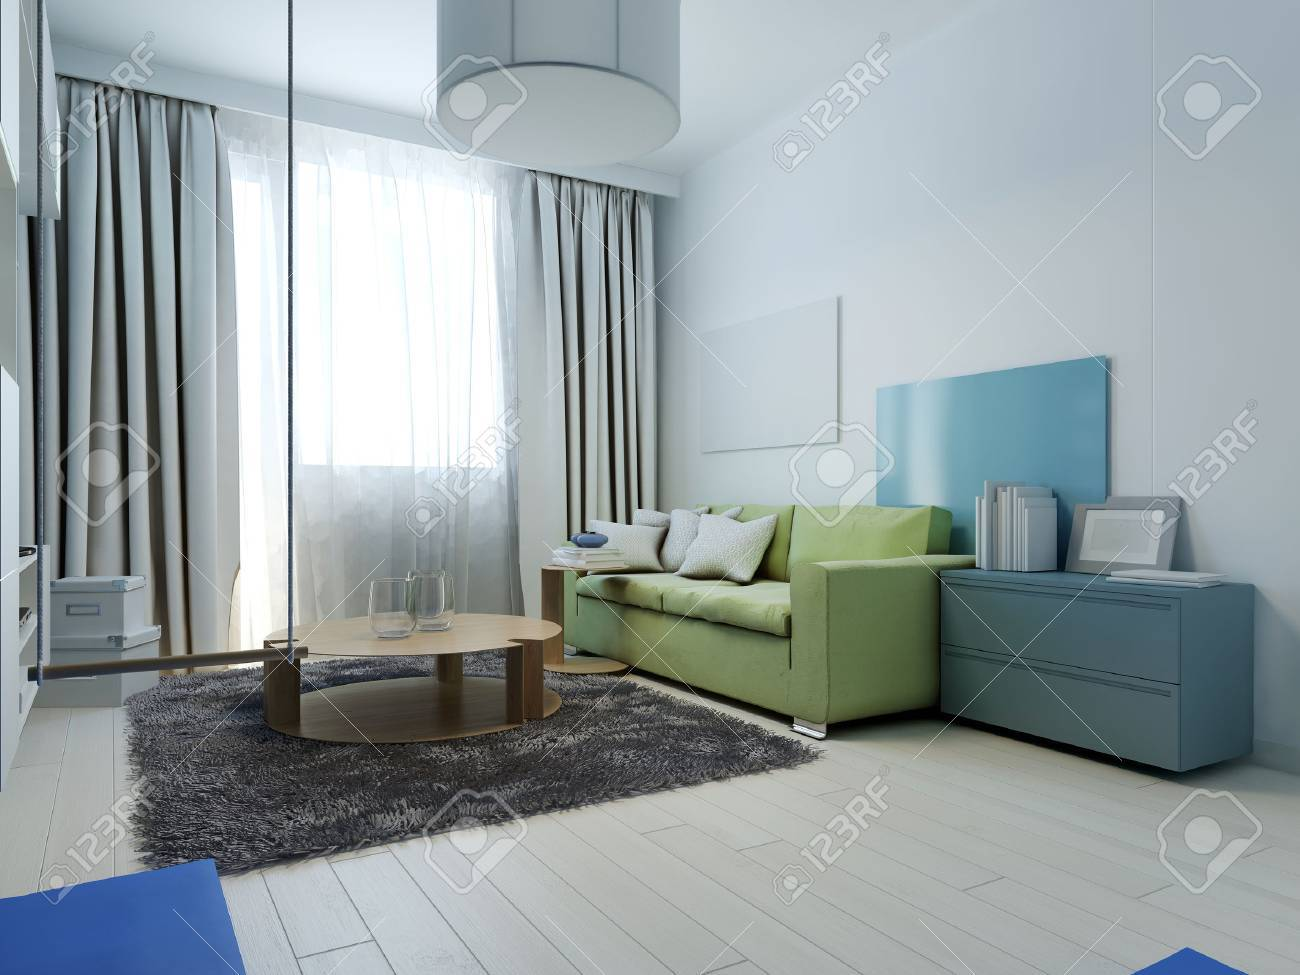 kitschy living room interior design for wall unit kitsch style with colored furniture the white walls are